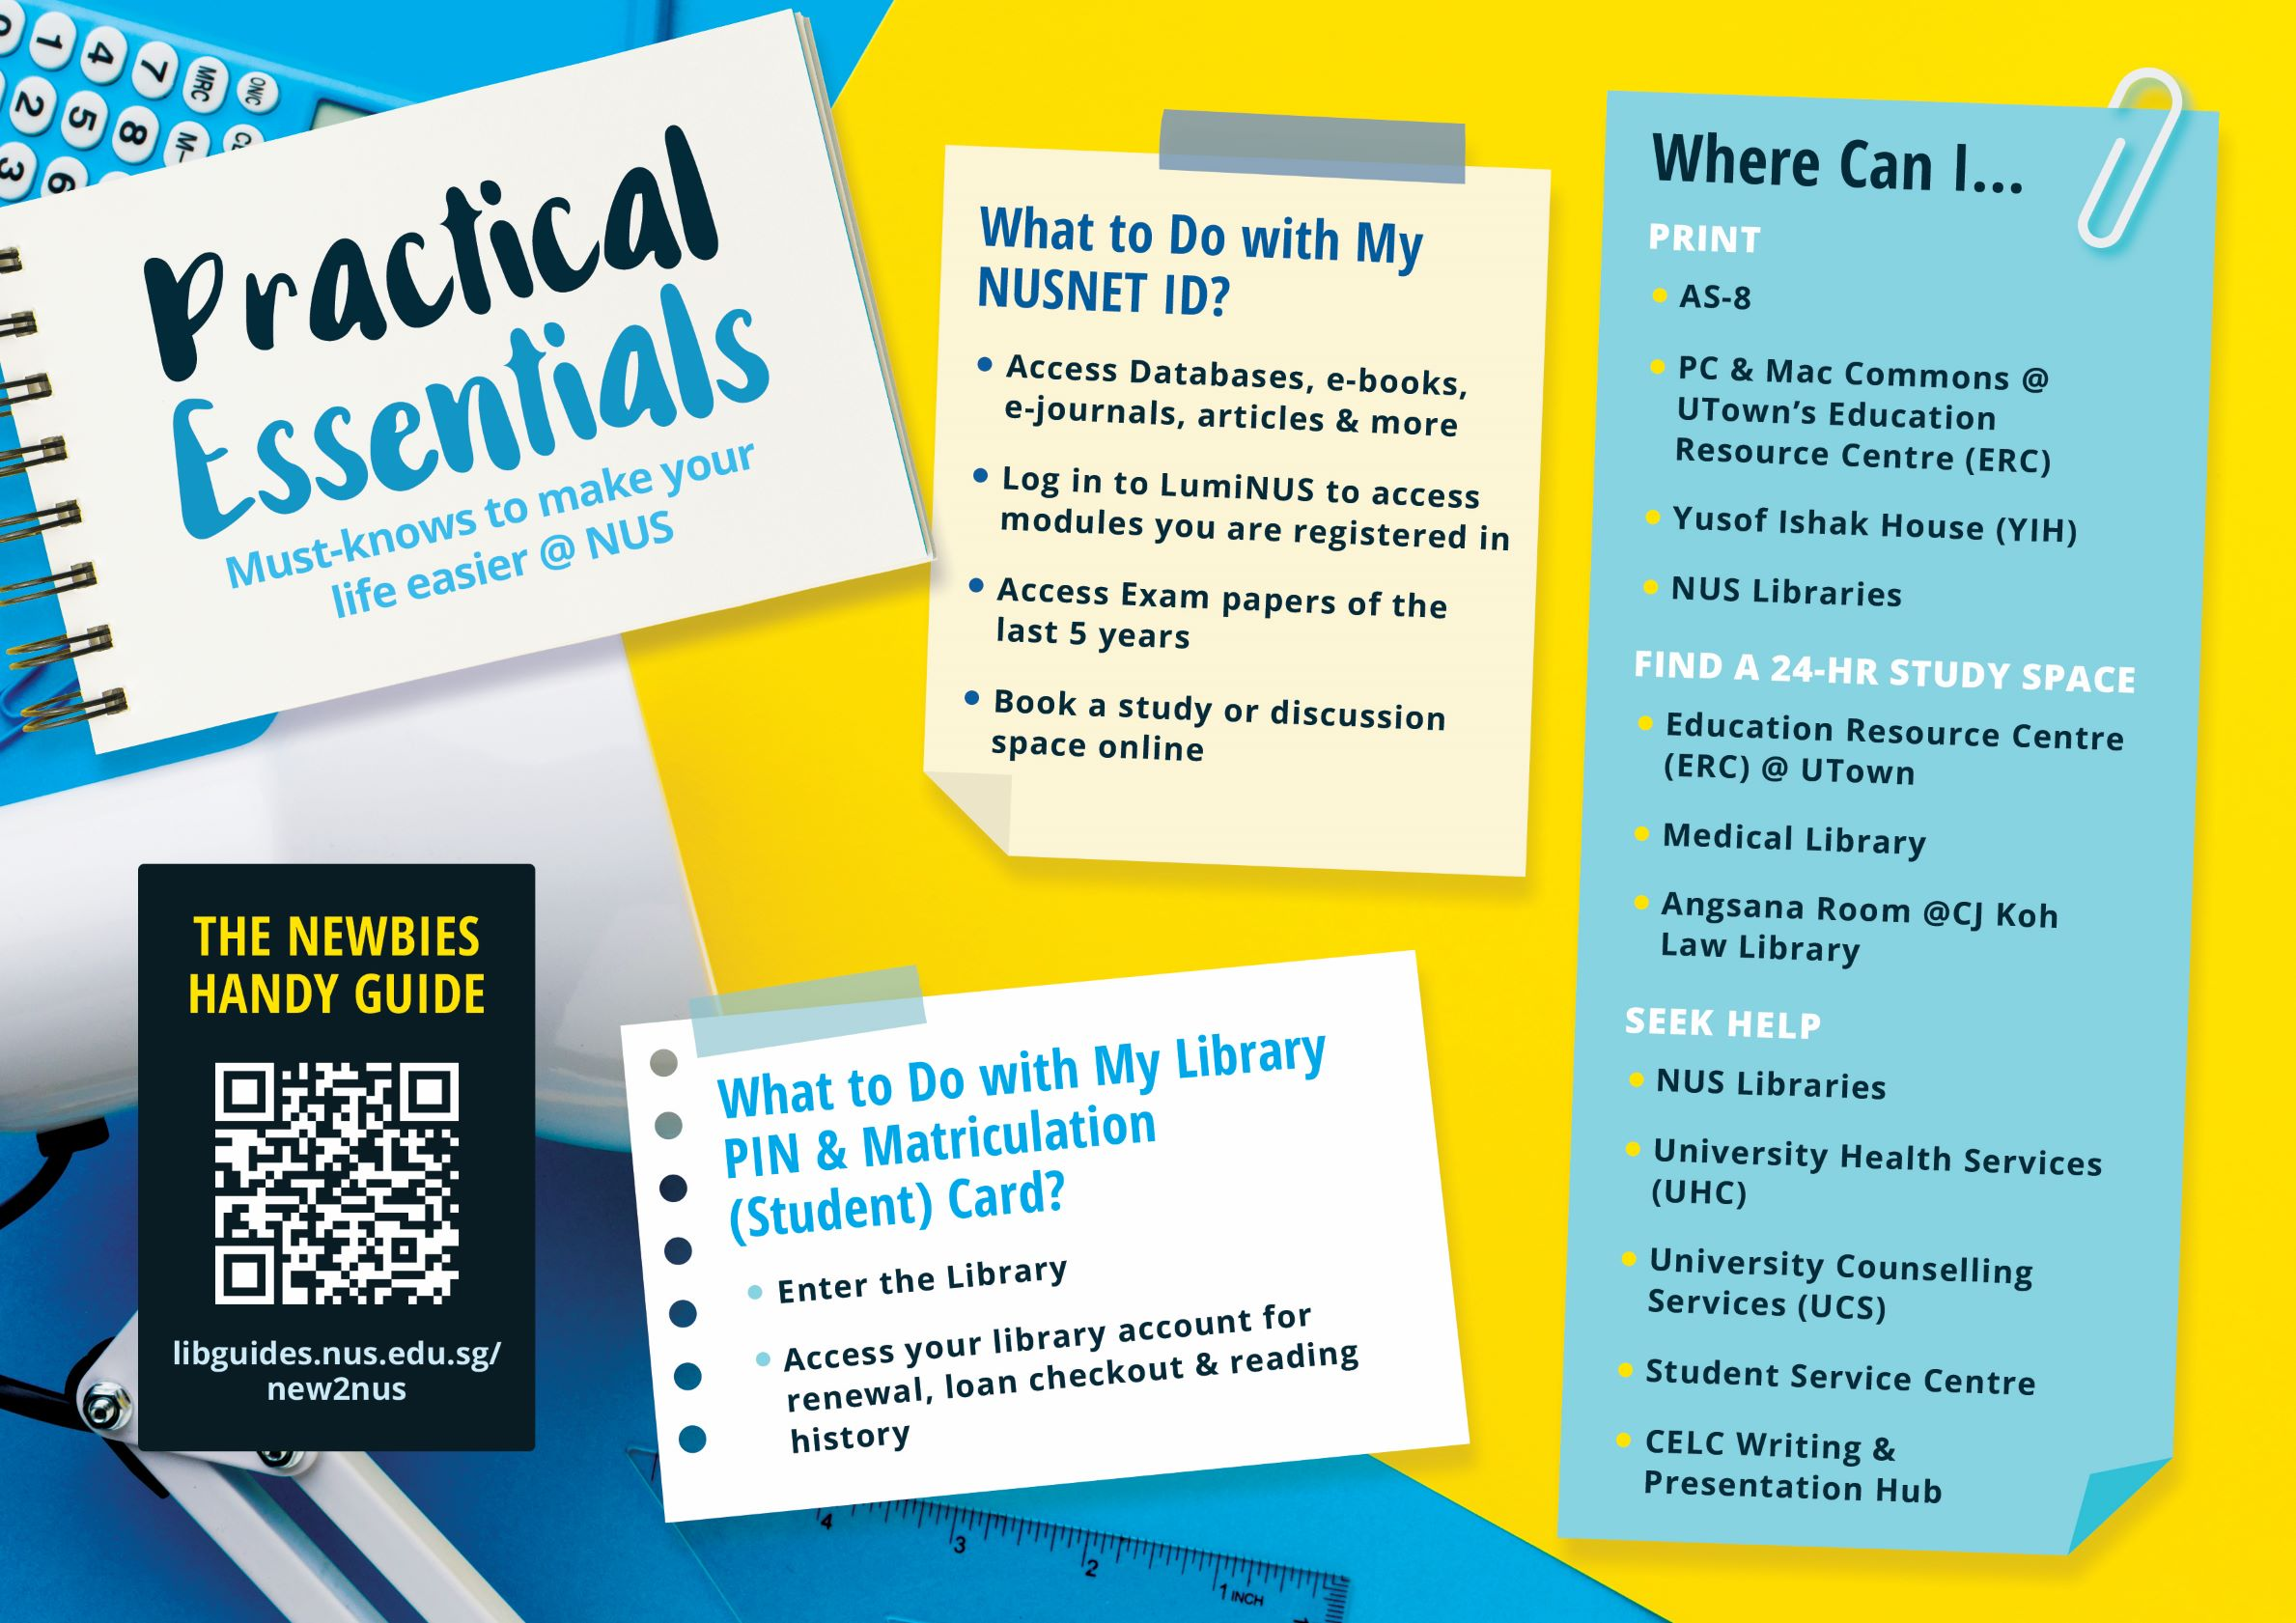 library guide - practical essentials